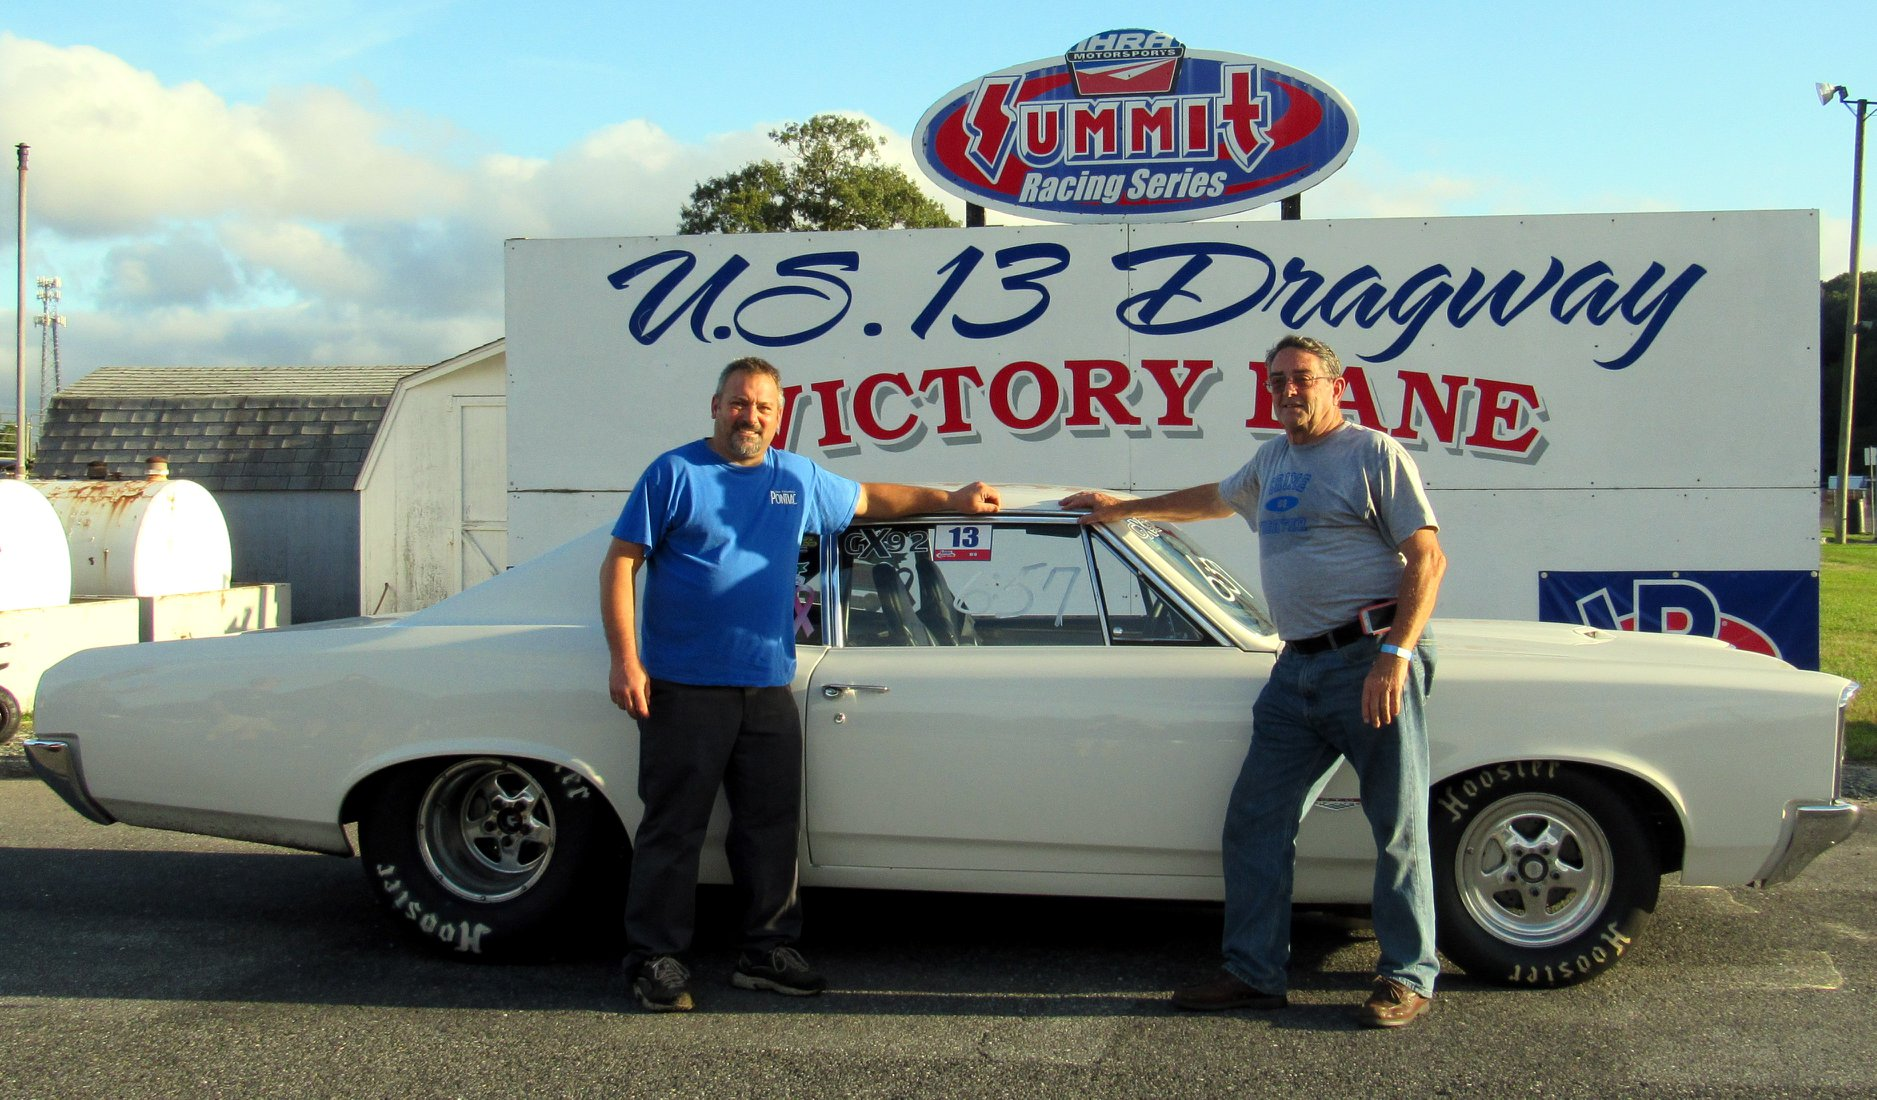 U.S. 13 Dragway Results – September 17, 2018